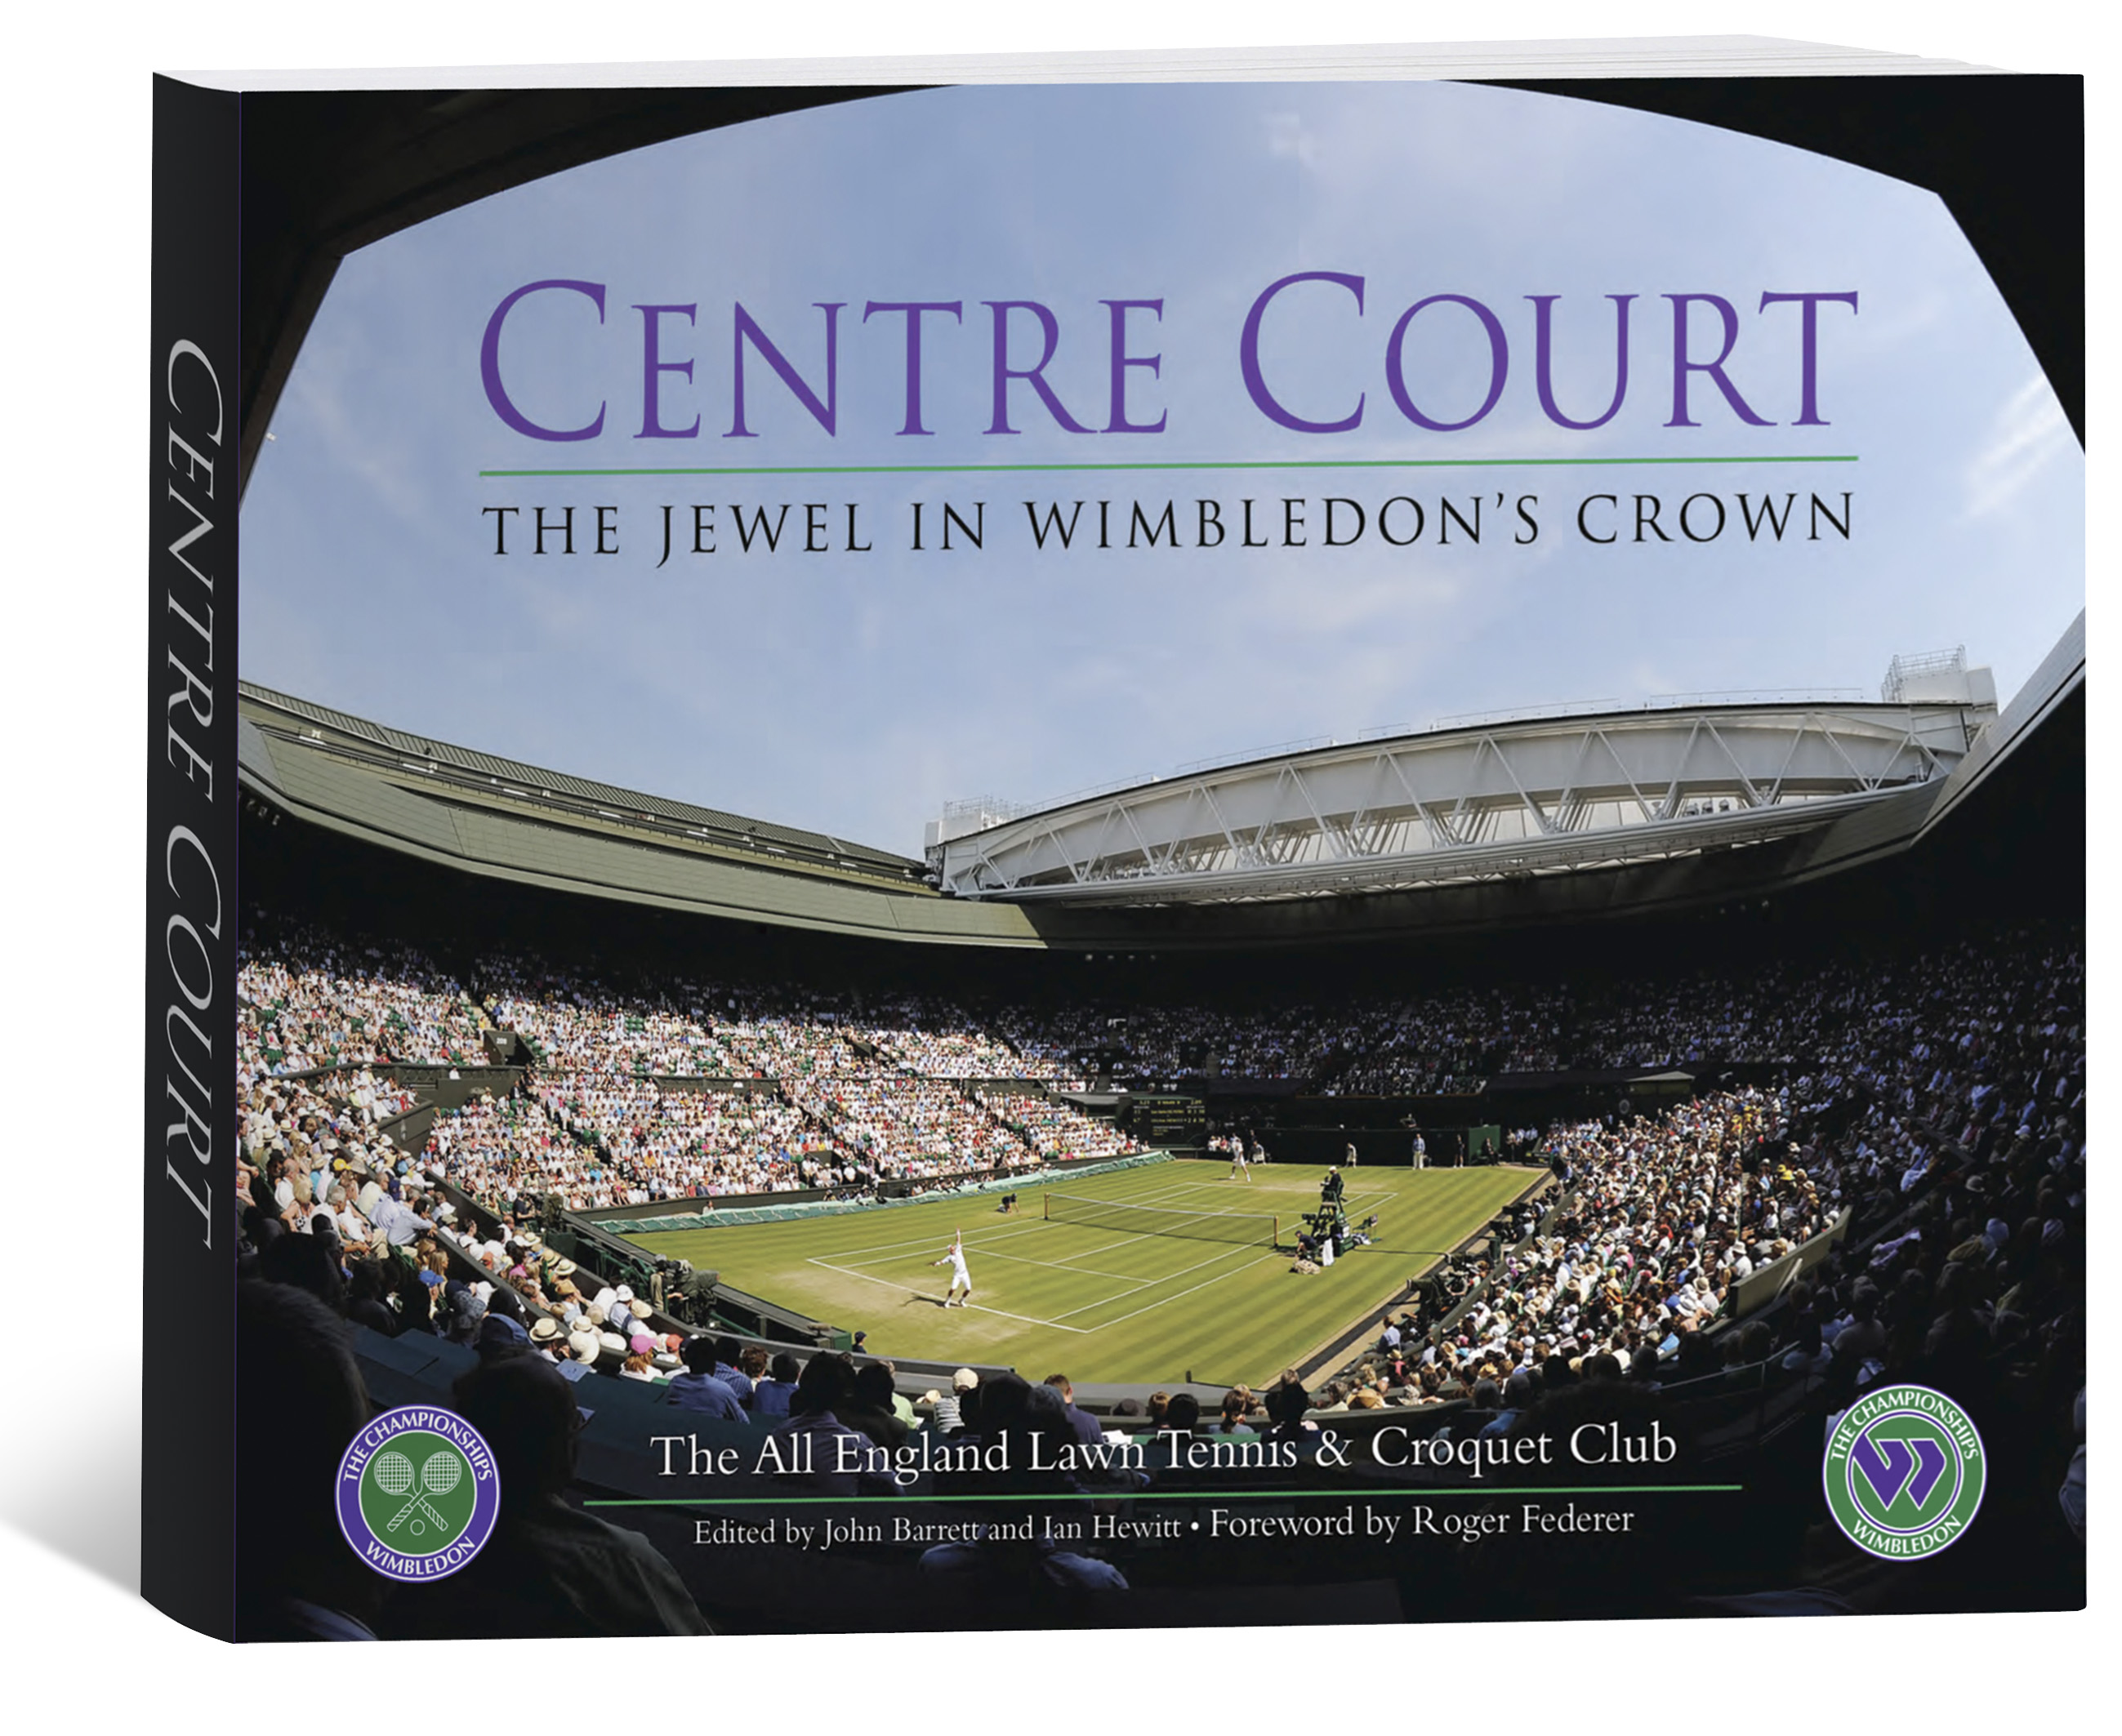 Wimbledon Centre Court The Jewel in Wimbledons Crown Book 2nd Edition